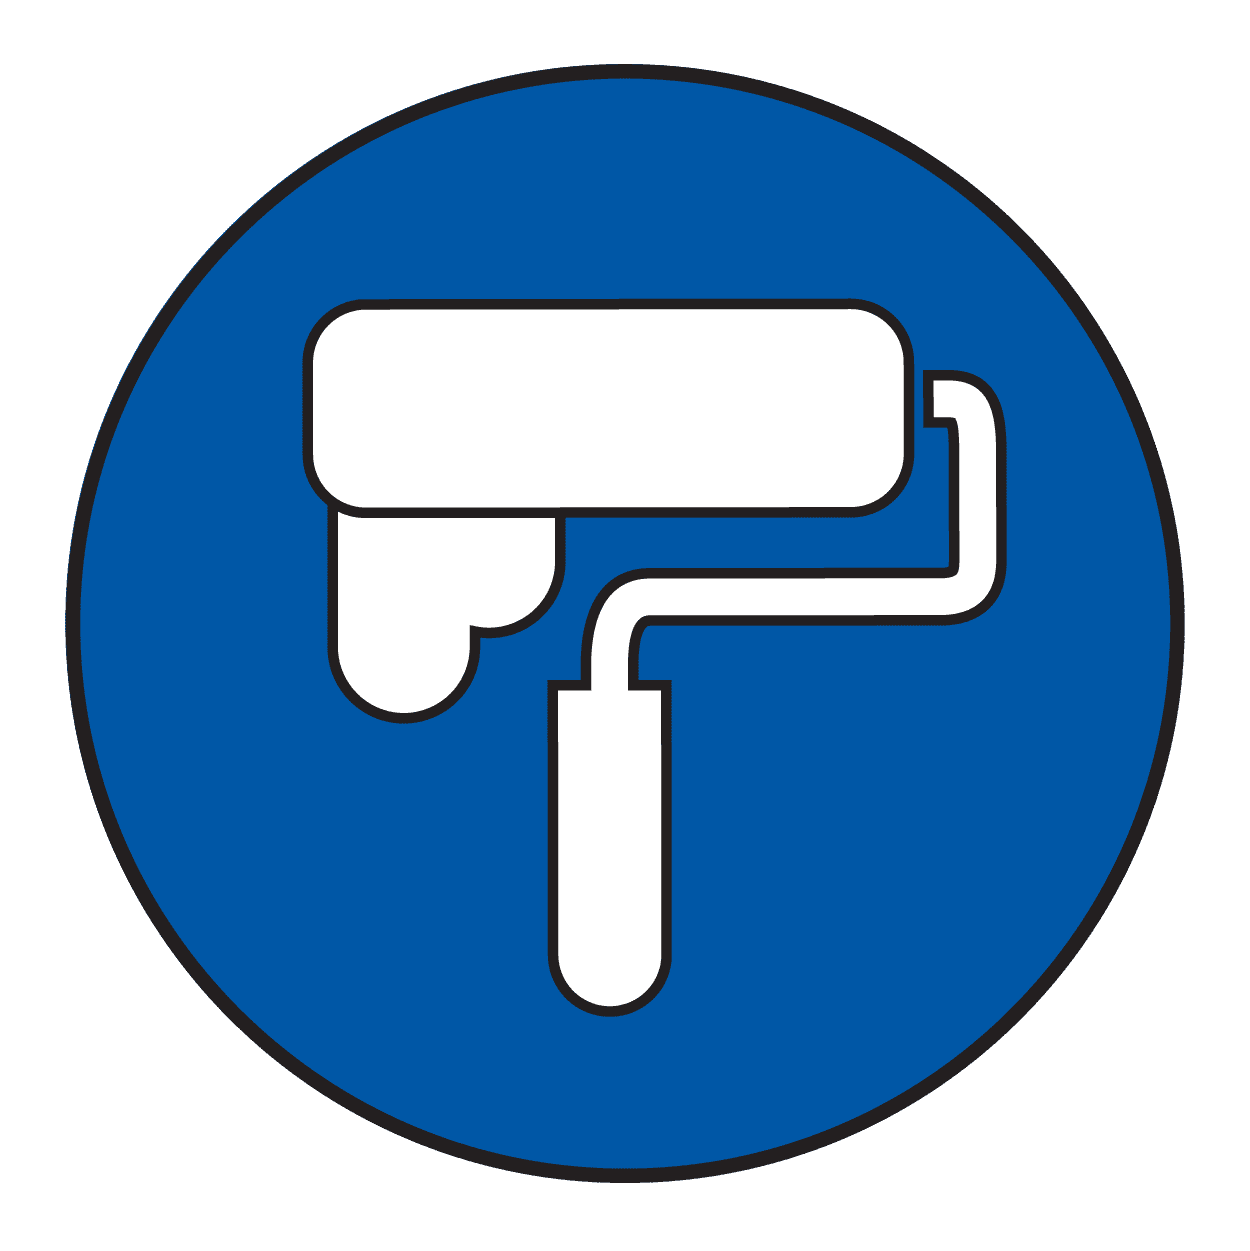 Light blue icon of a paint roller.